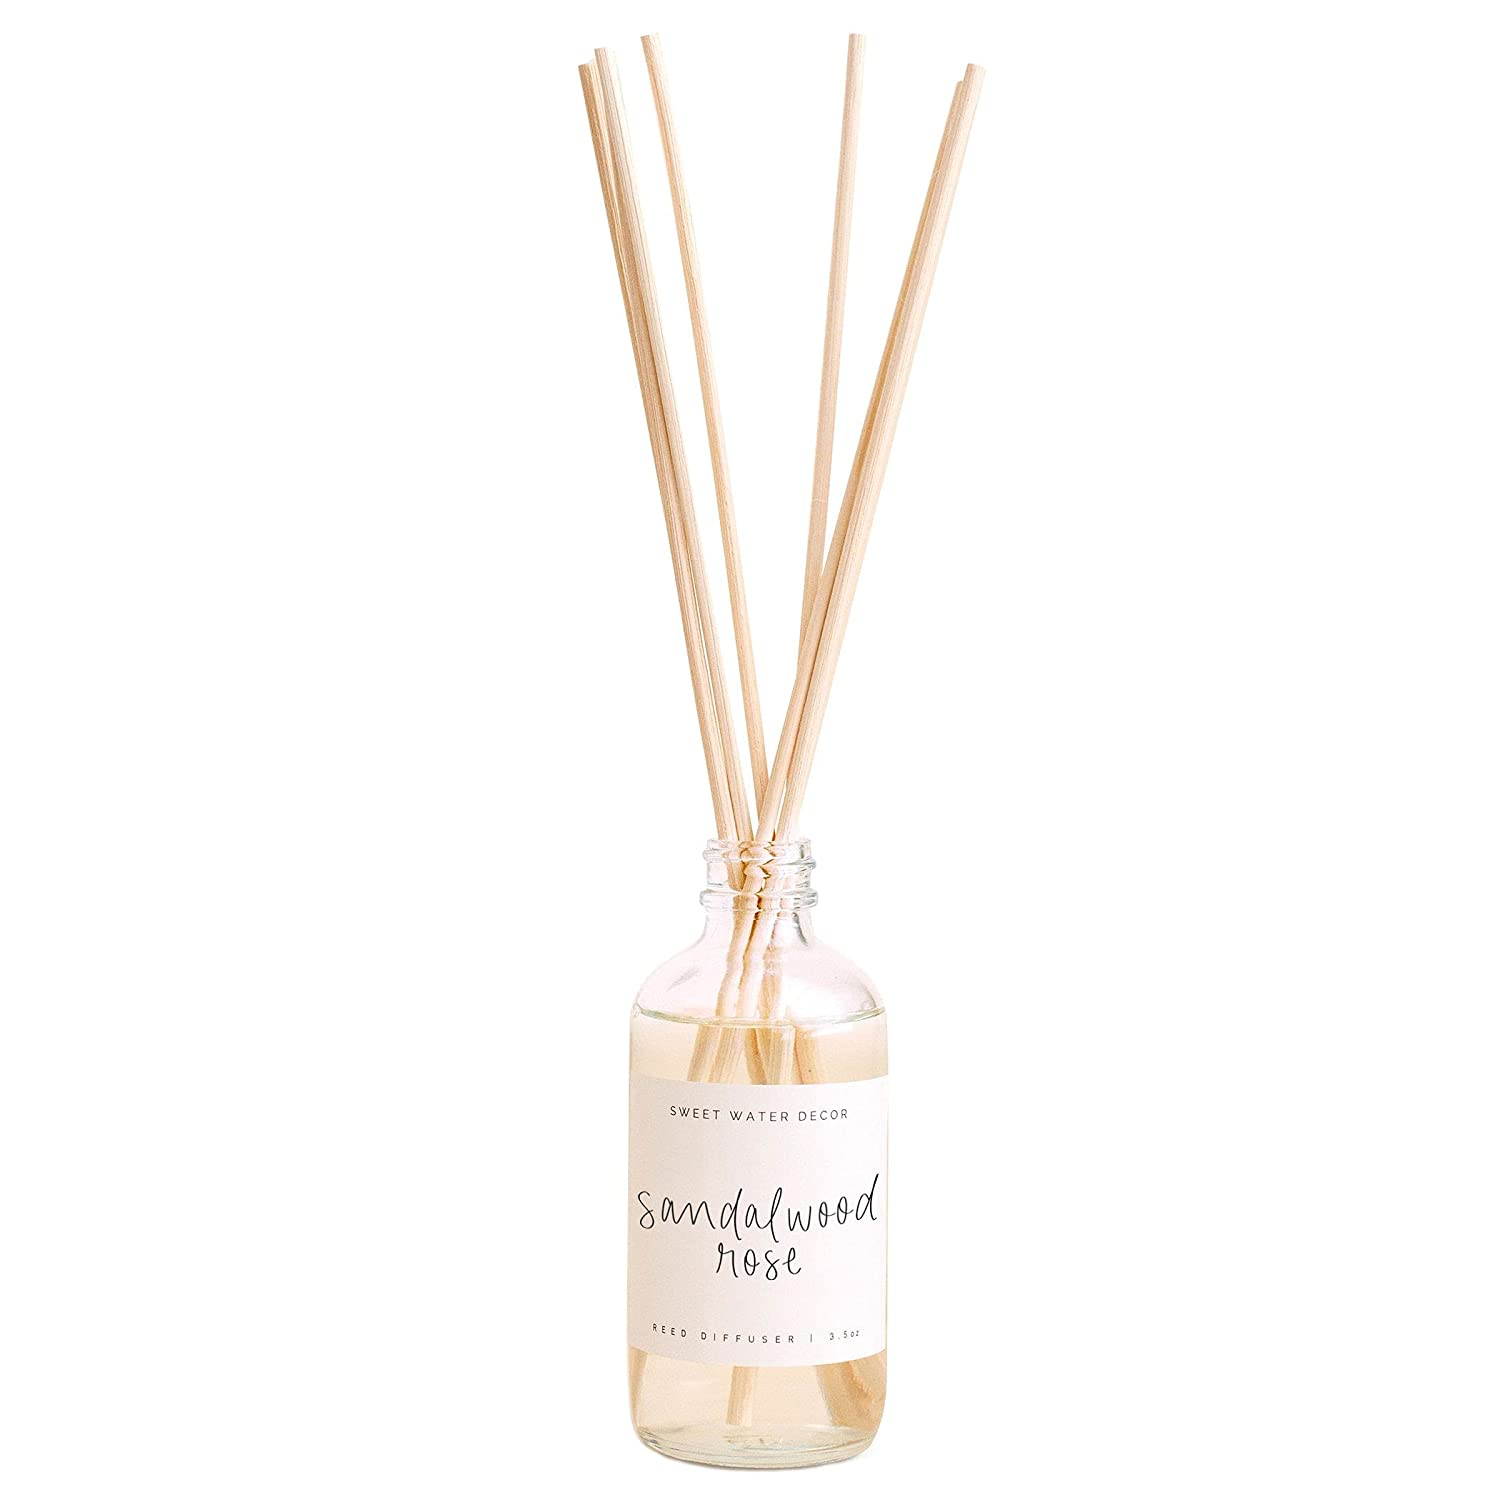 Sweet Water Decor Sandalwood Rose Reed Diffuser Set   Leafy, Winey, Rose, Vanilla, Musk Scented Diffusers   Fragrance Oils   Home Decor   Housewarming Gift   Aromatic Stress Relief